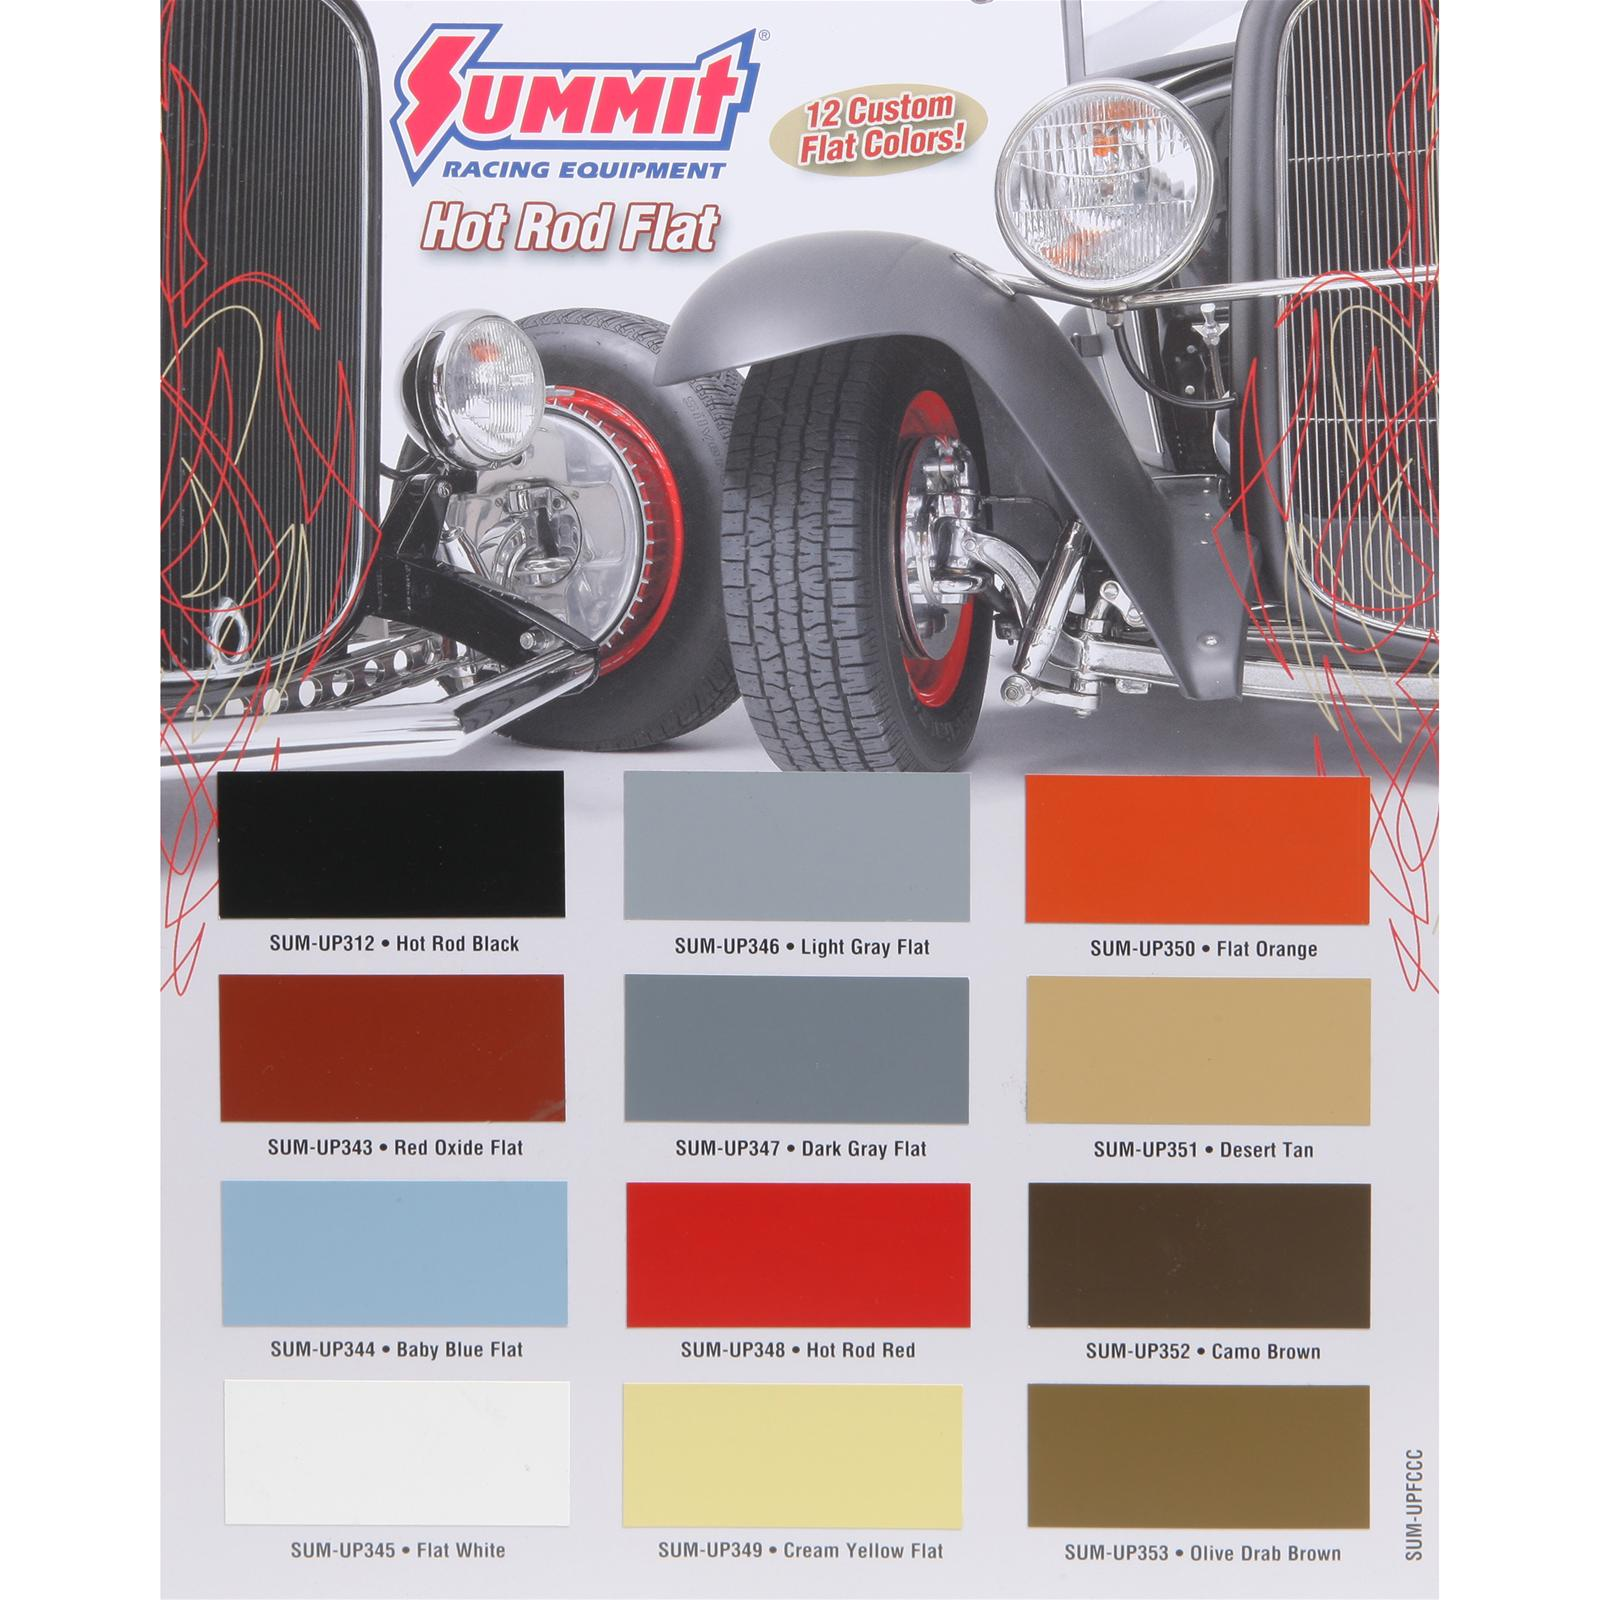 Summit Racing 1 Stage Flat Paint Chip Charts Sum Upfccc Free 1964 Dodge Color Chips Shipping On Orders Over 99 At